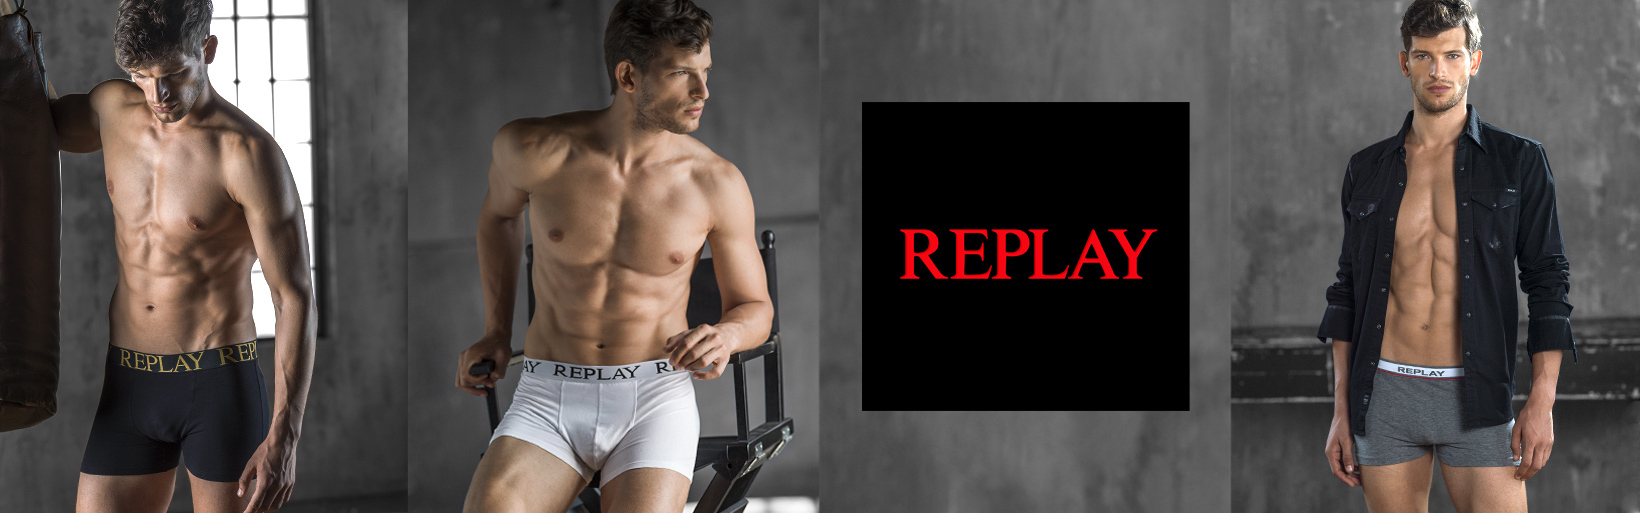 REPLAY Underwear